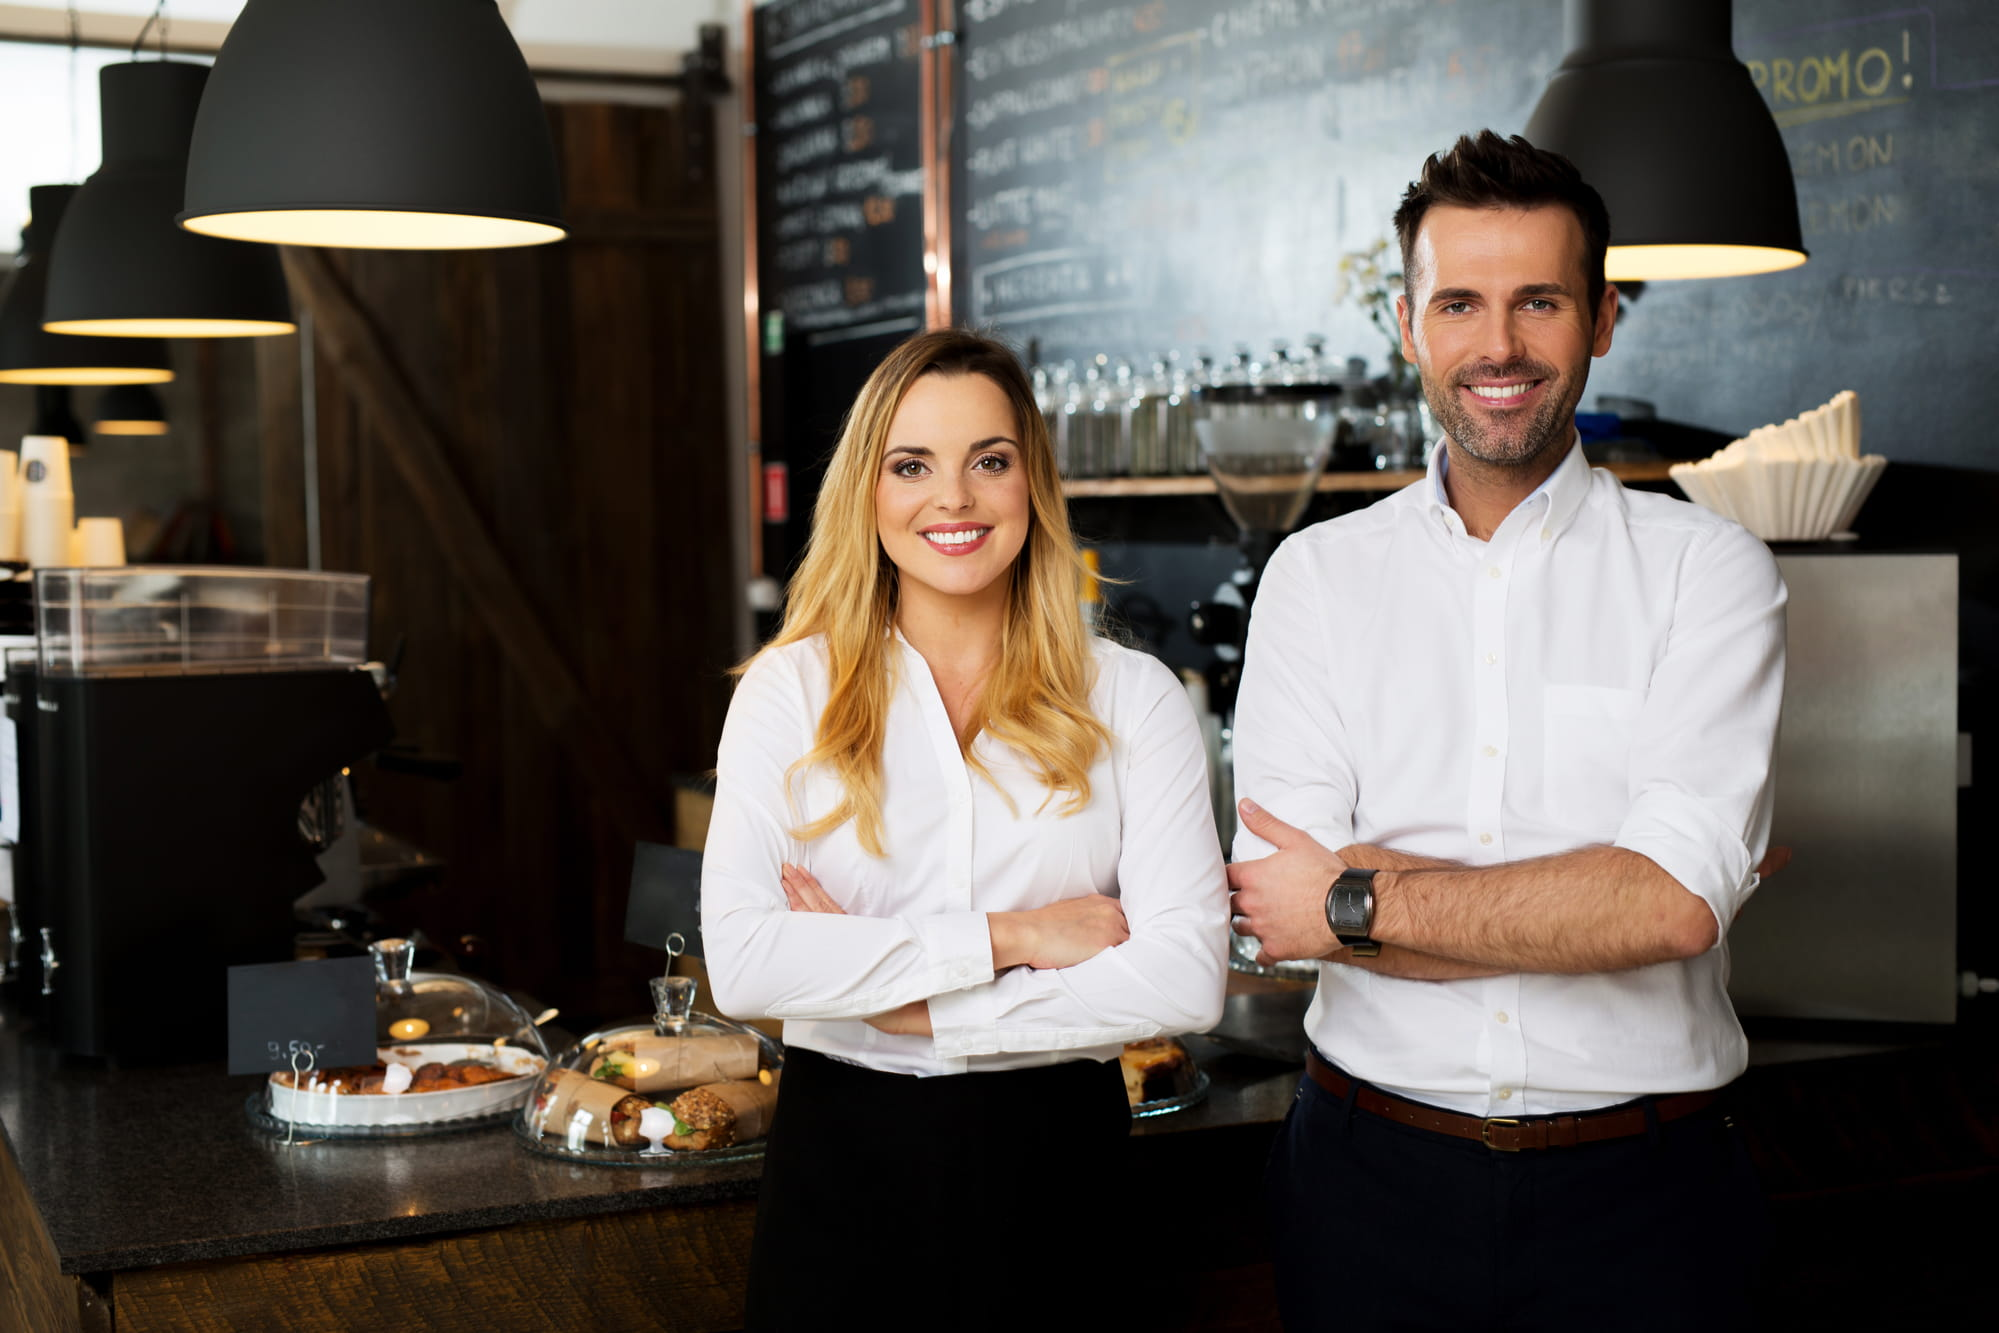 Business owners in a cafe